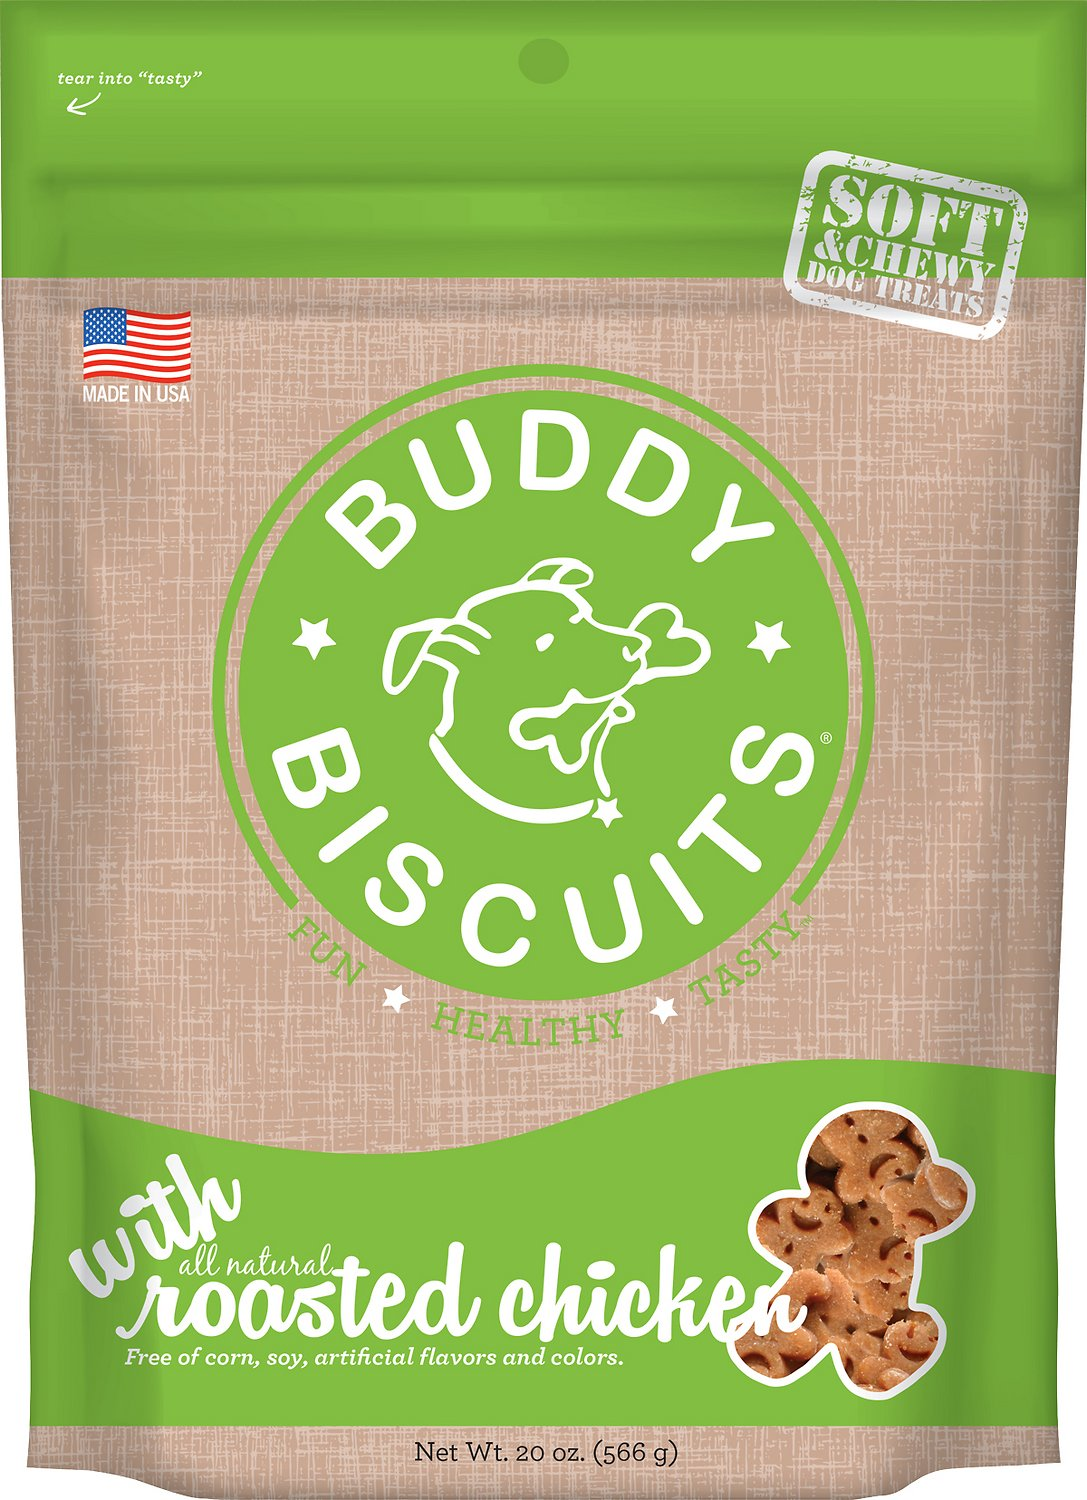 Buddy Biscuits with Roasted Chicken Soft & Chewy Dog Treats Image